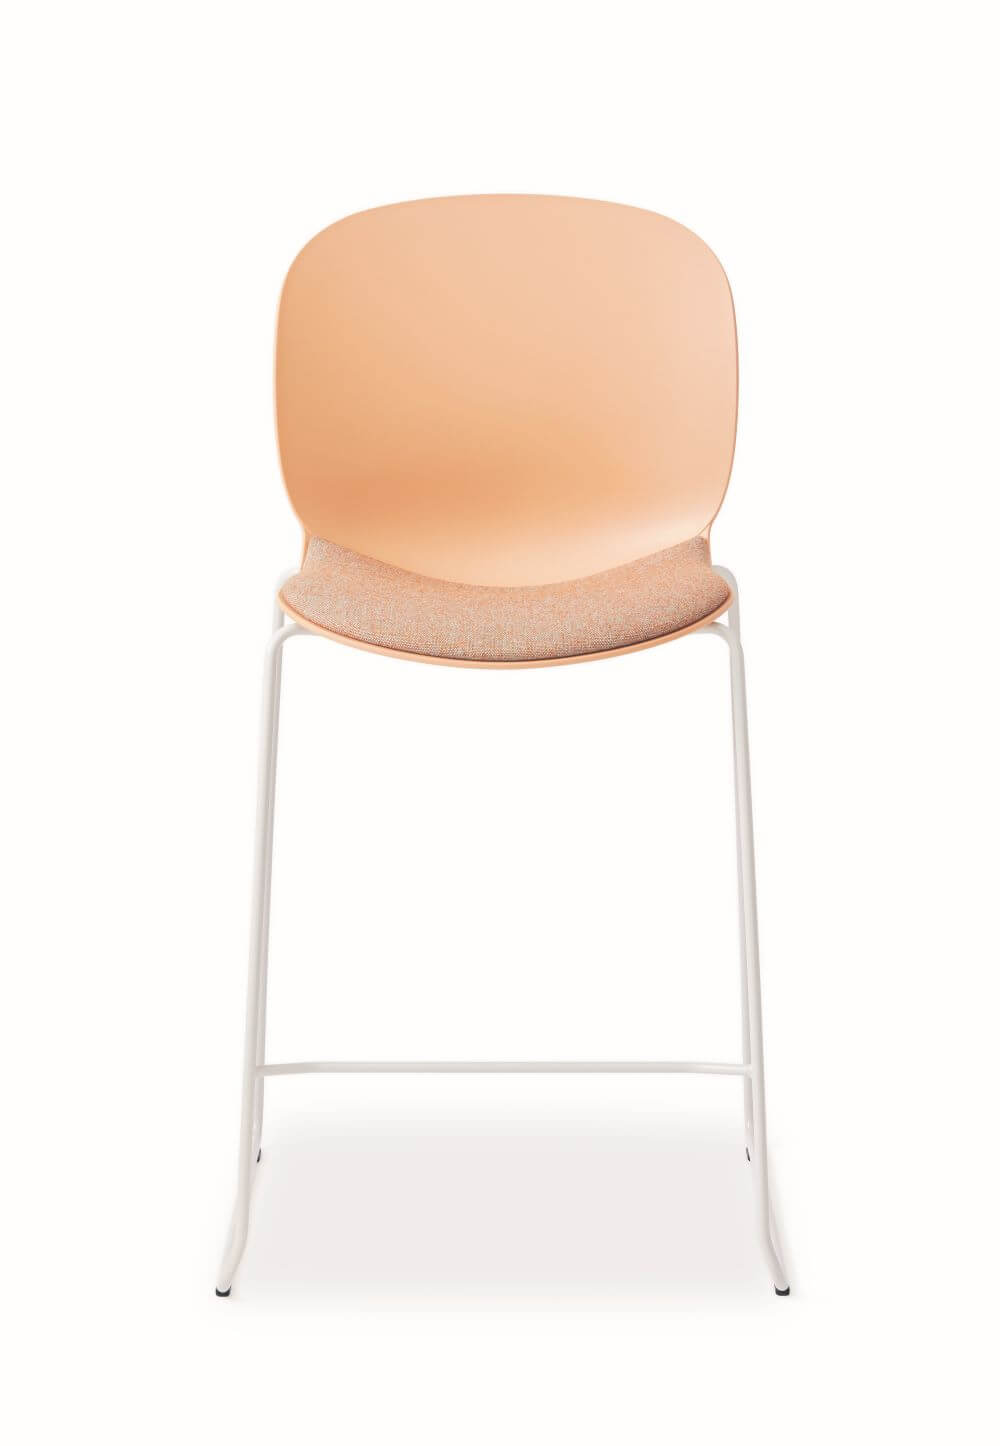 RBM Noor Stool in orange with orange seat pad, with white steel frame and foot rest